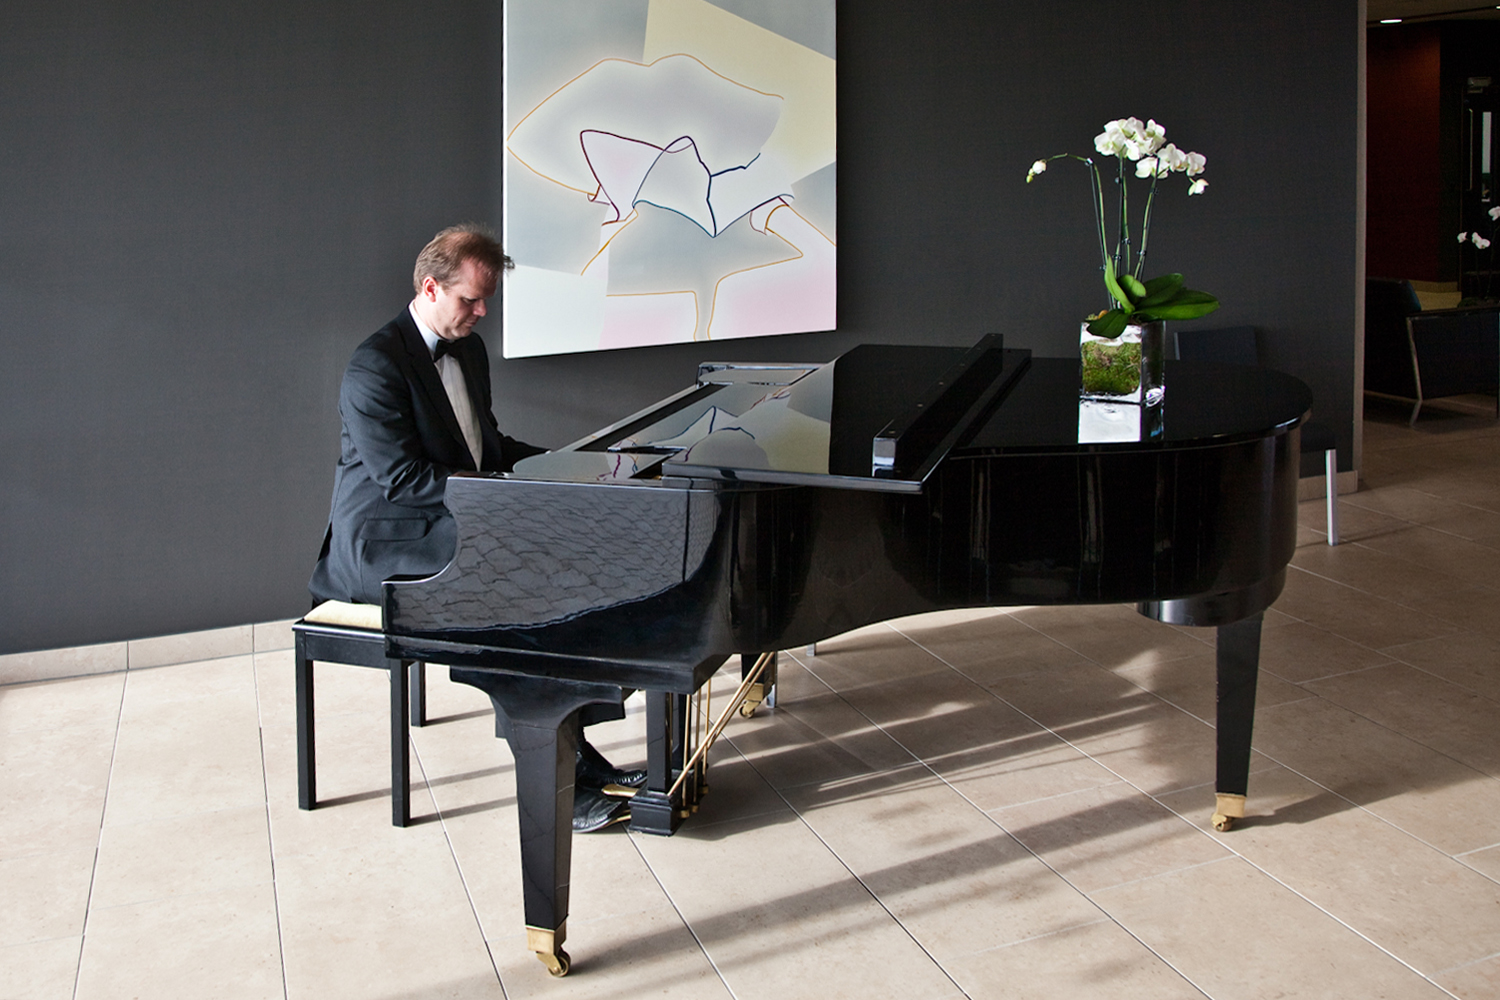 Wedding pianist Jon Pickard